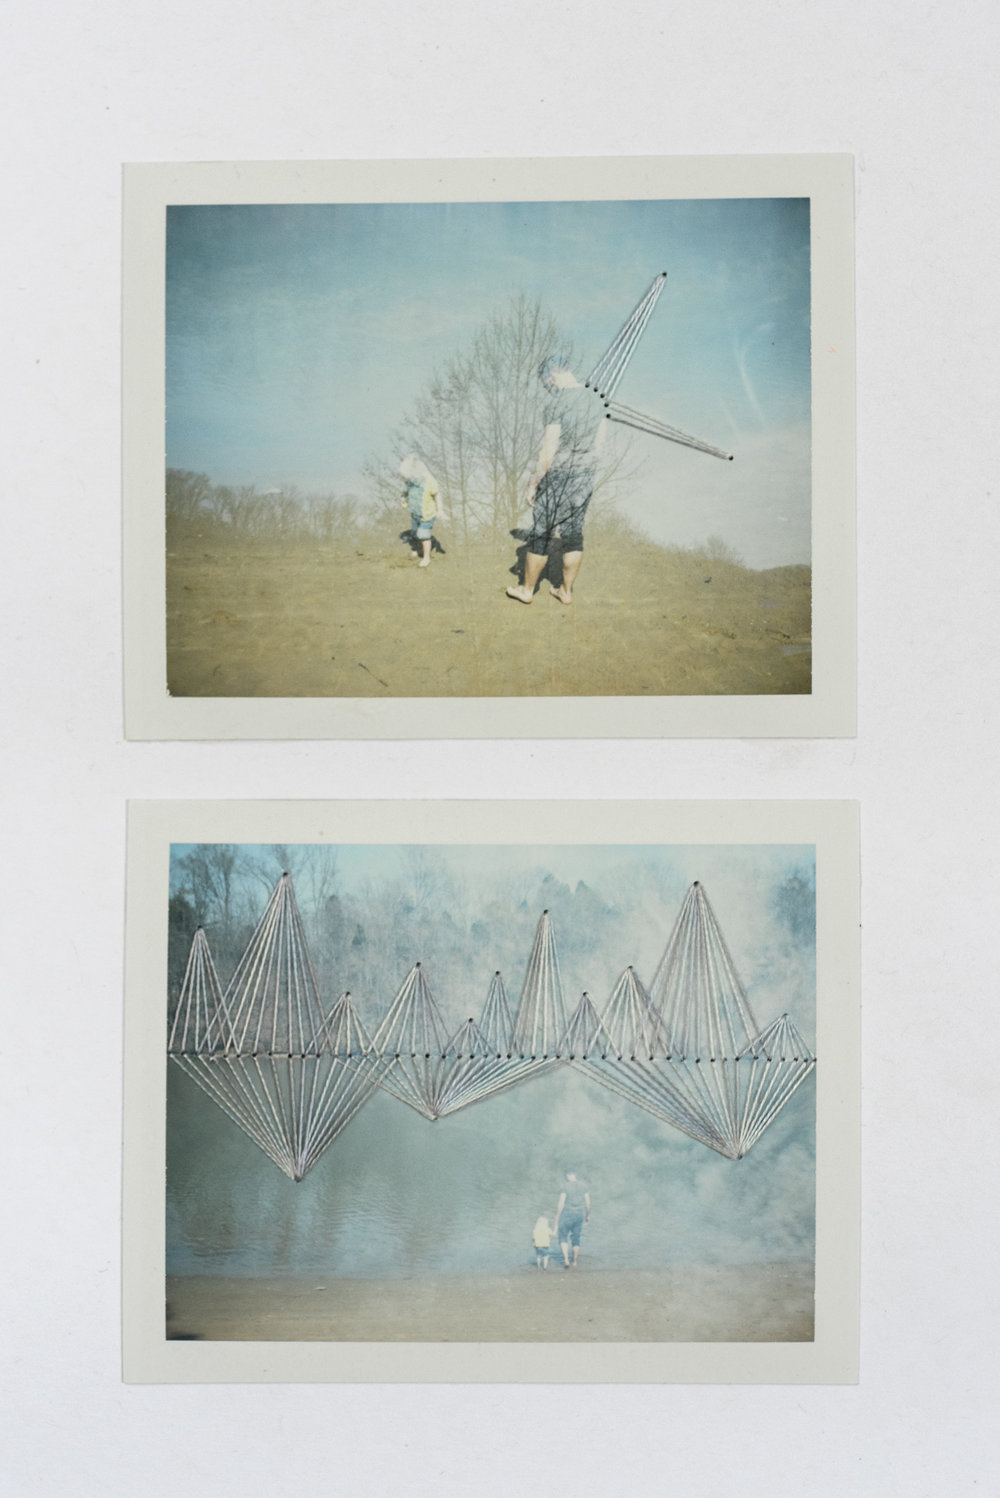 The Father | Polaroid Land Camera 250 | Jocelyn Mathewes